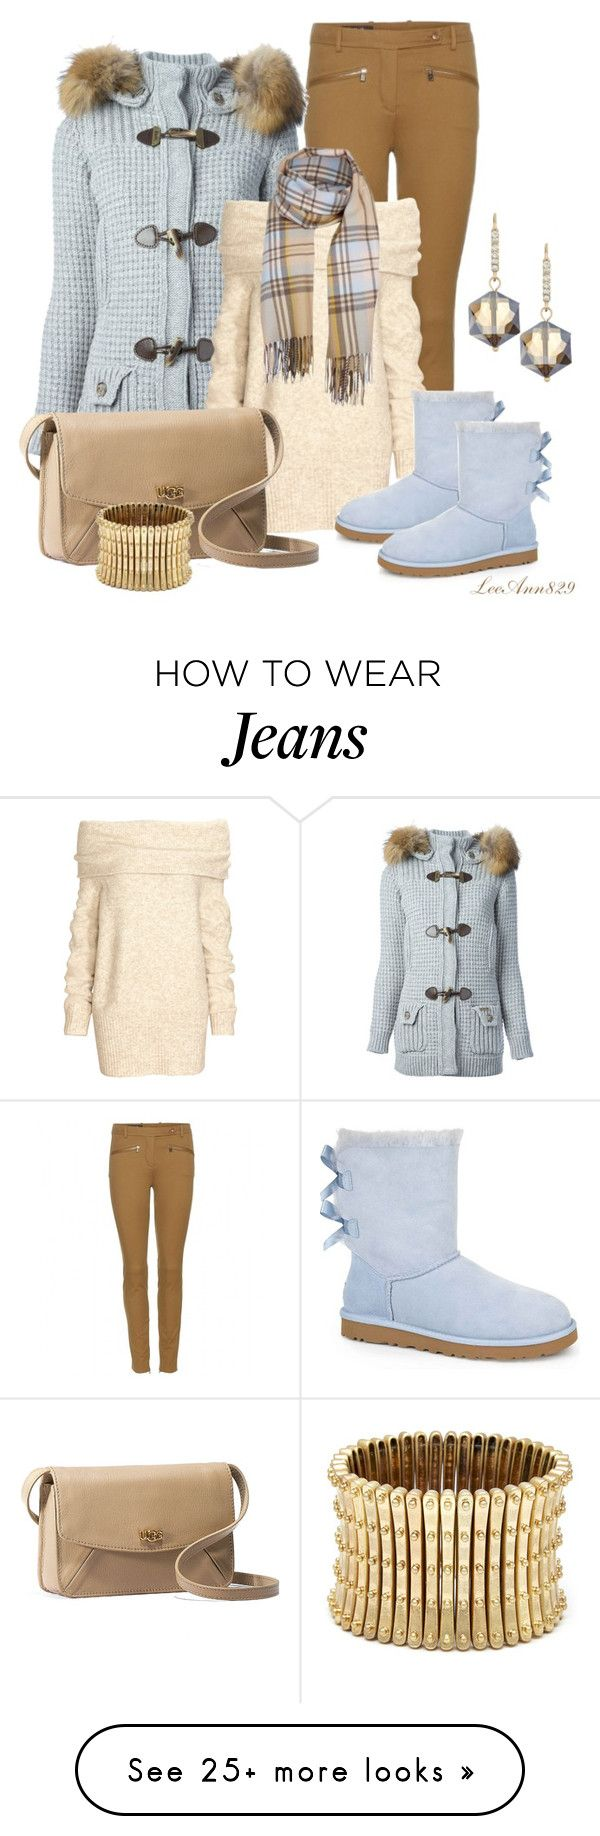 """contest"" by leeann829 on Polyvore featuring Loro Piana, Bark, H&M, UGG Australia, Madison Parker and Sole Society"